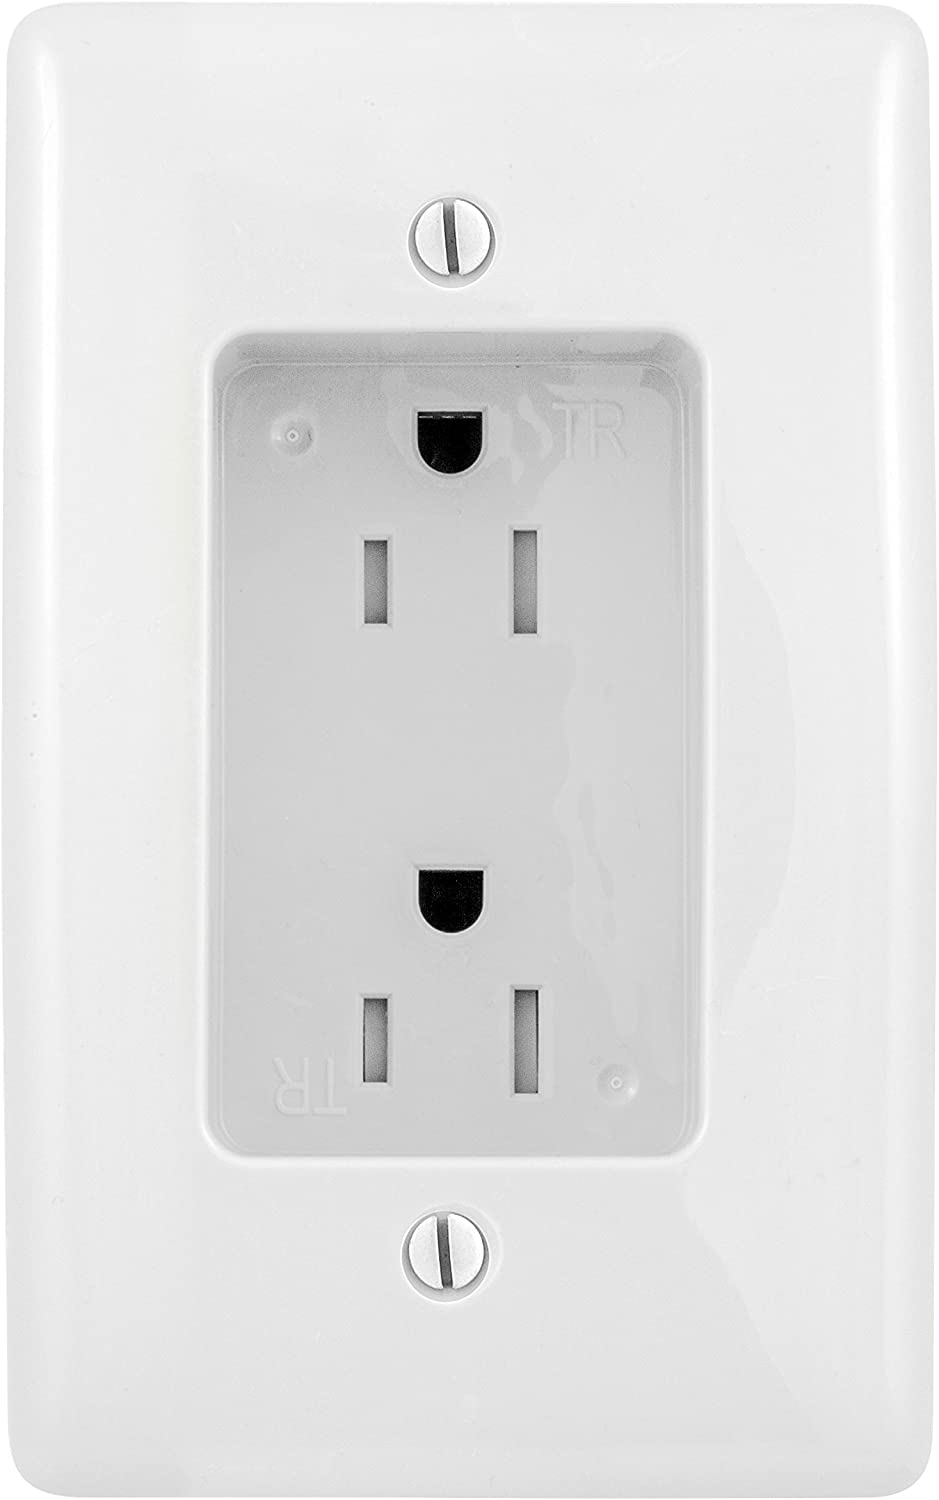 Bryant Electric RR1510W Box Mount 1-Gang Recessed TV Connection Outlet Plate with 15 Amp 125V Tamper-Resistant Duplex Receptacle, White